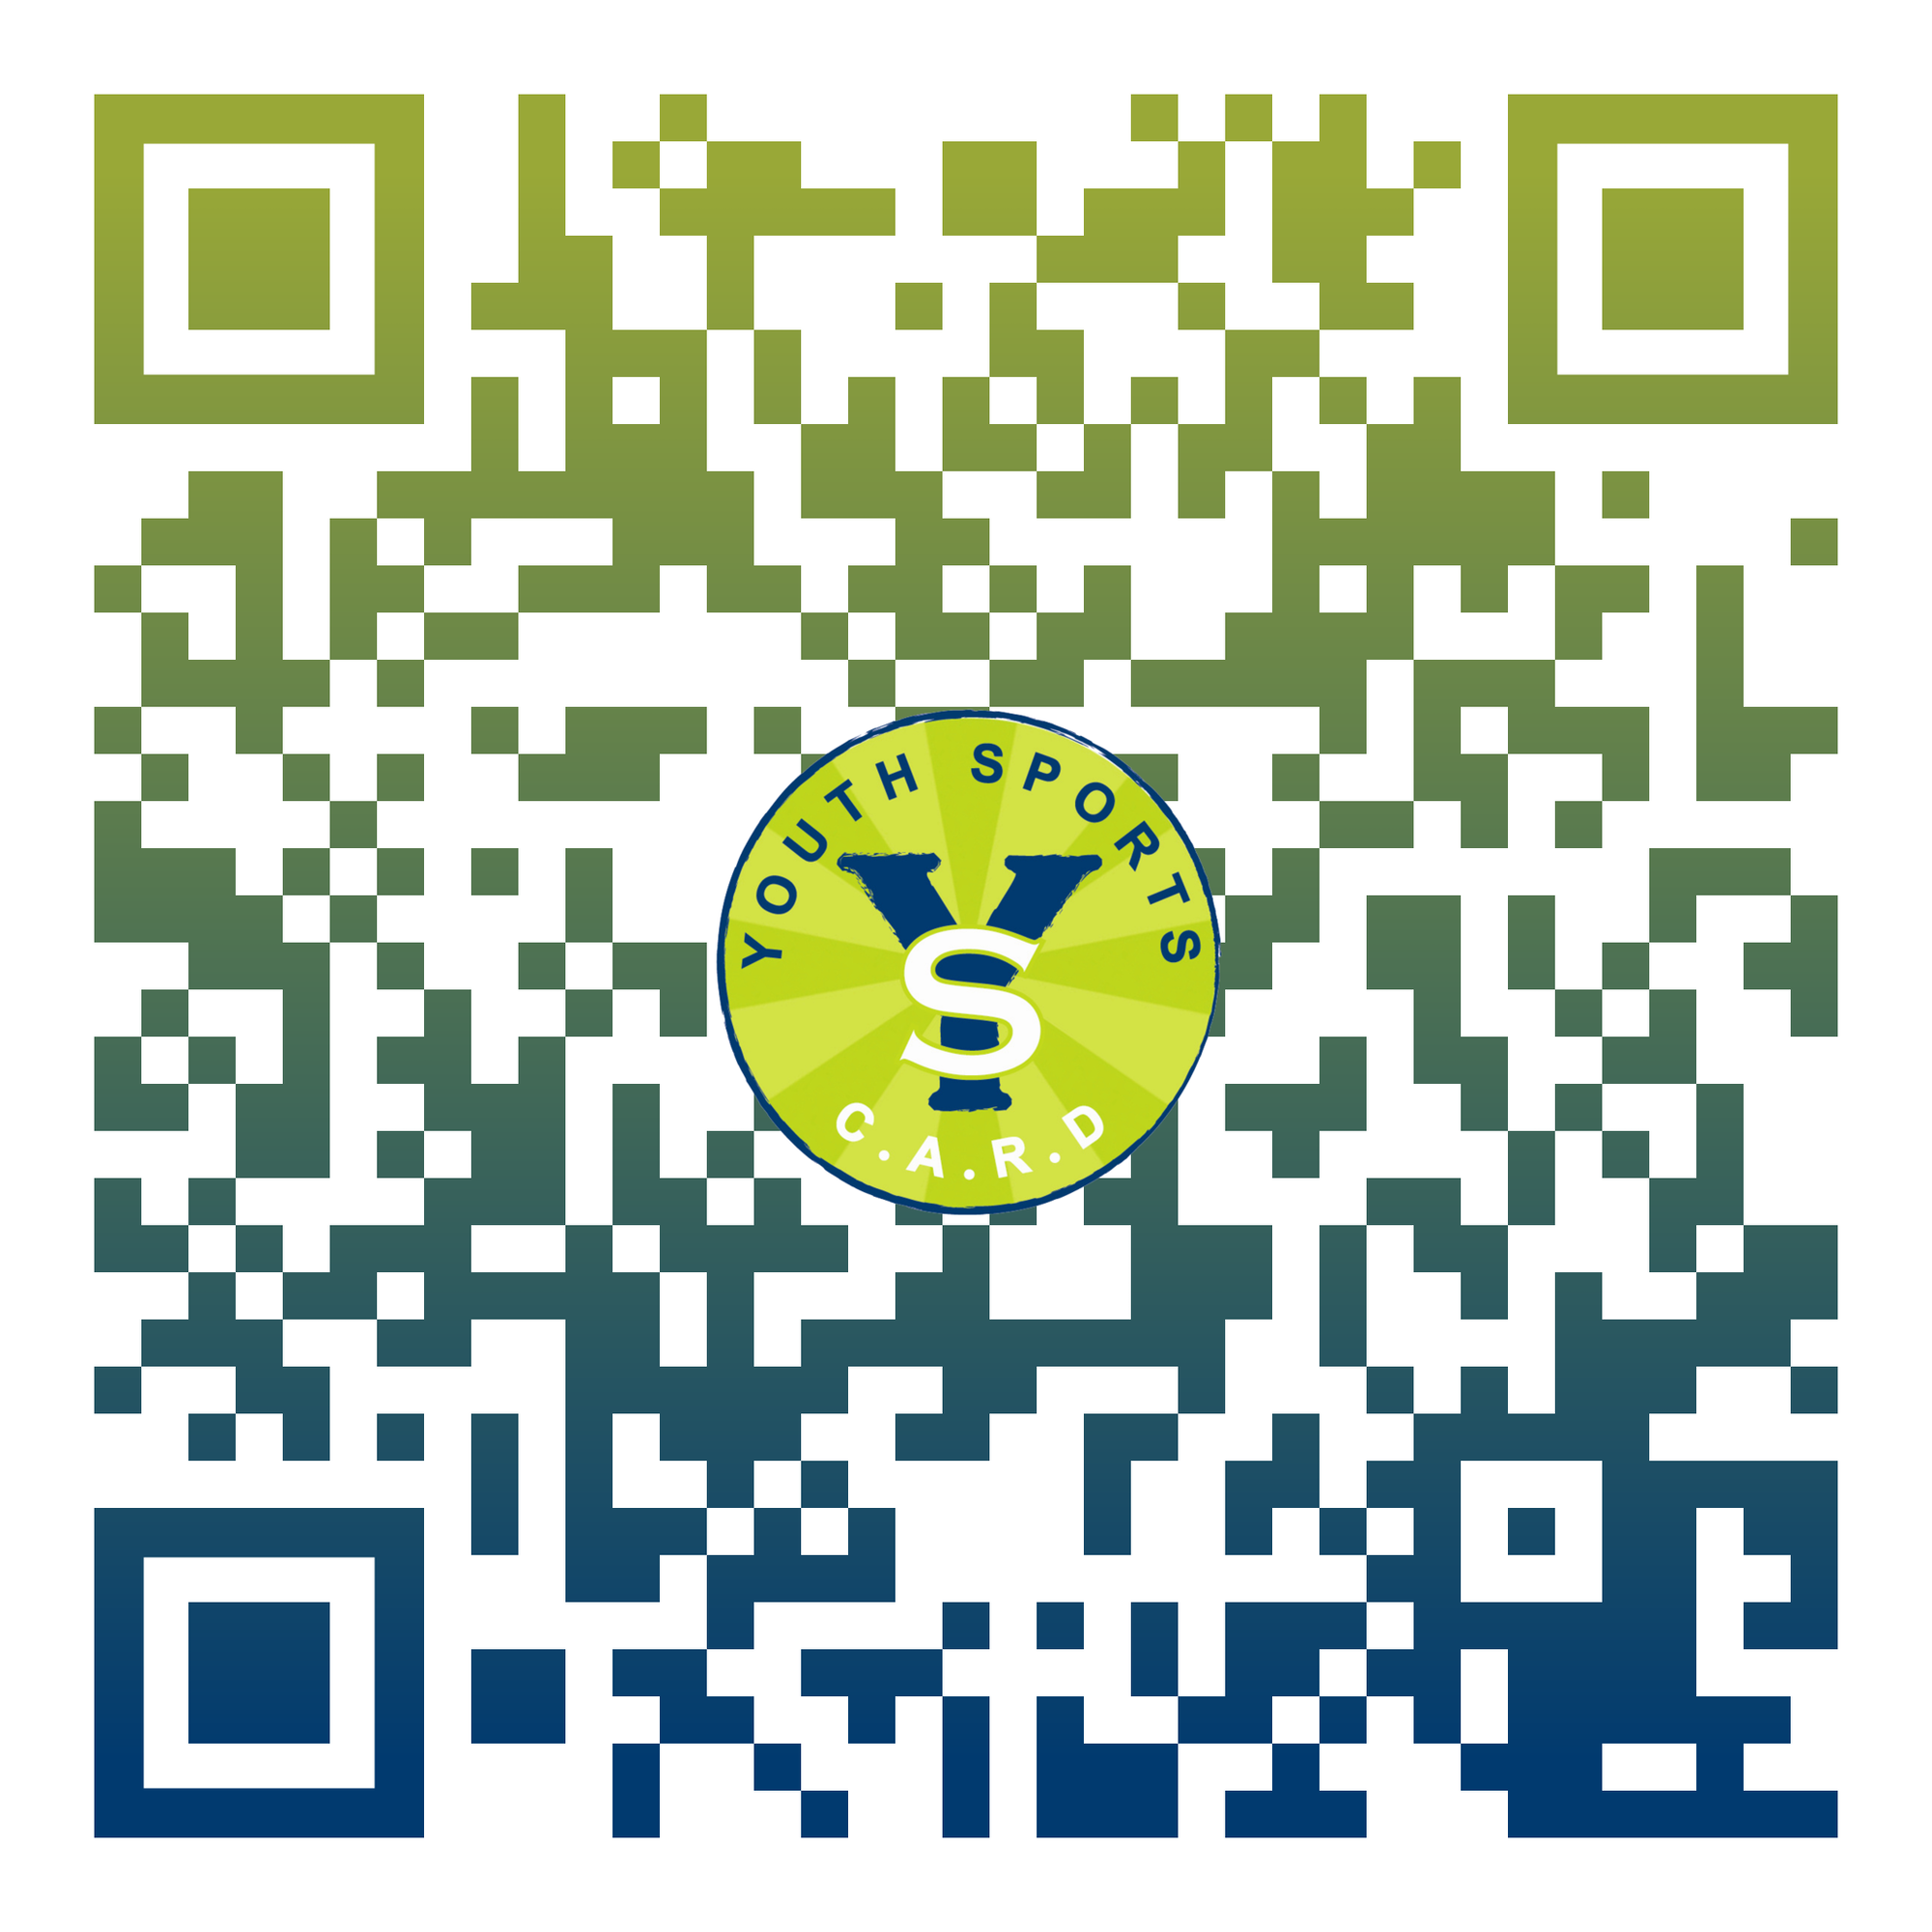 May contain: qr code